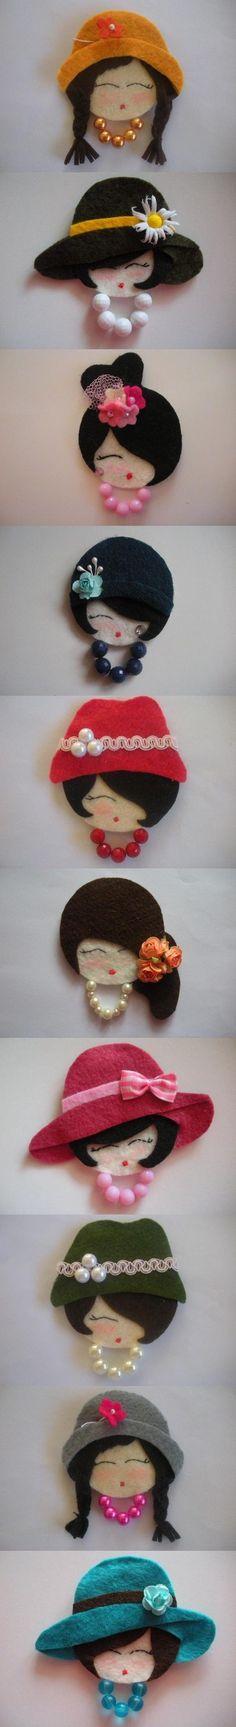 Lady'sl Face w/Various Hairstyles & Hats